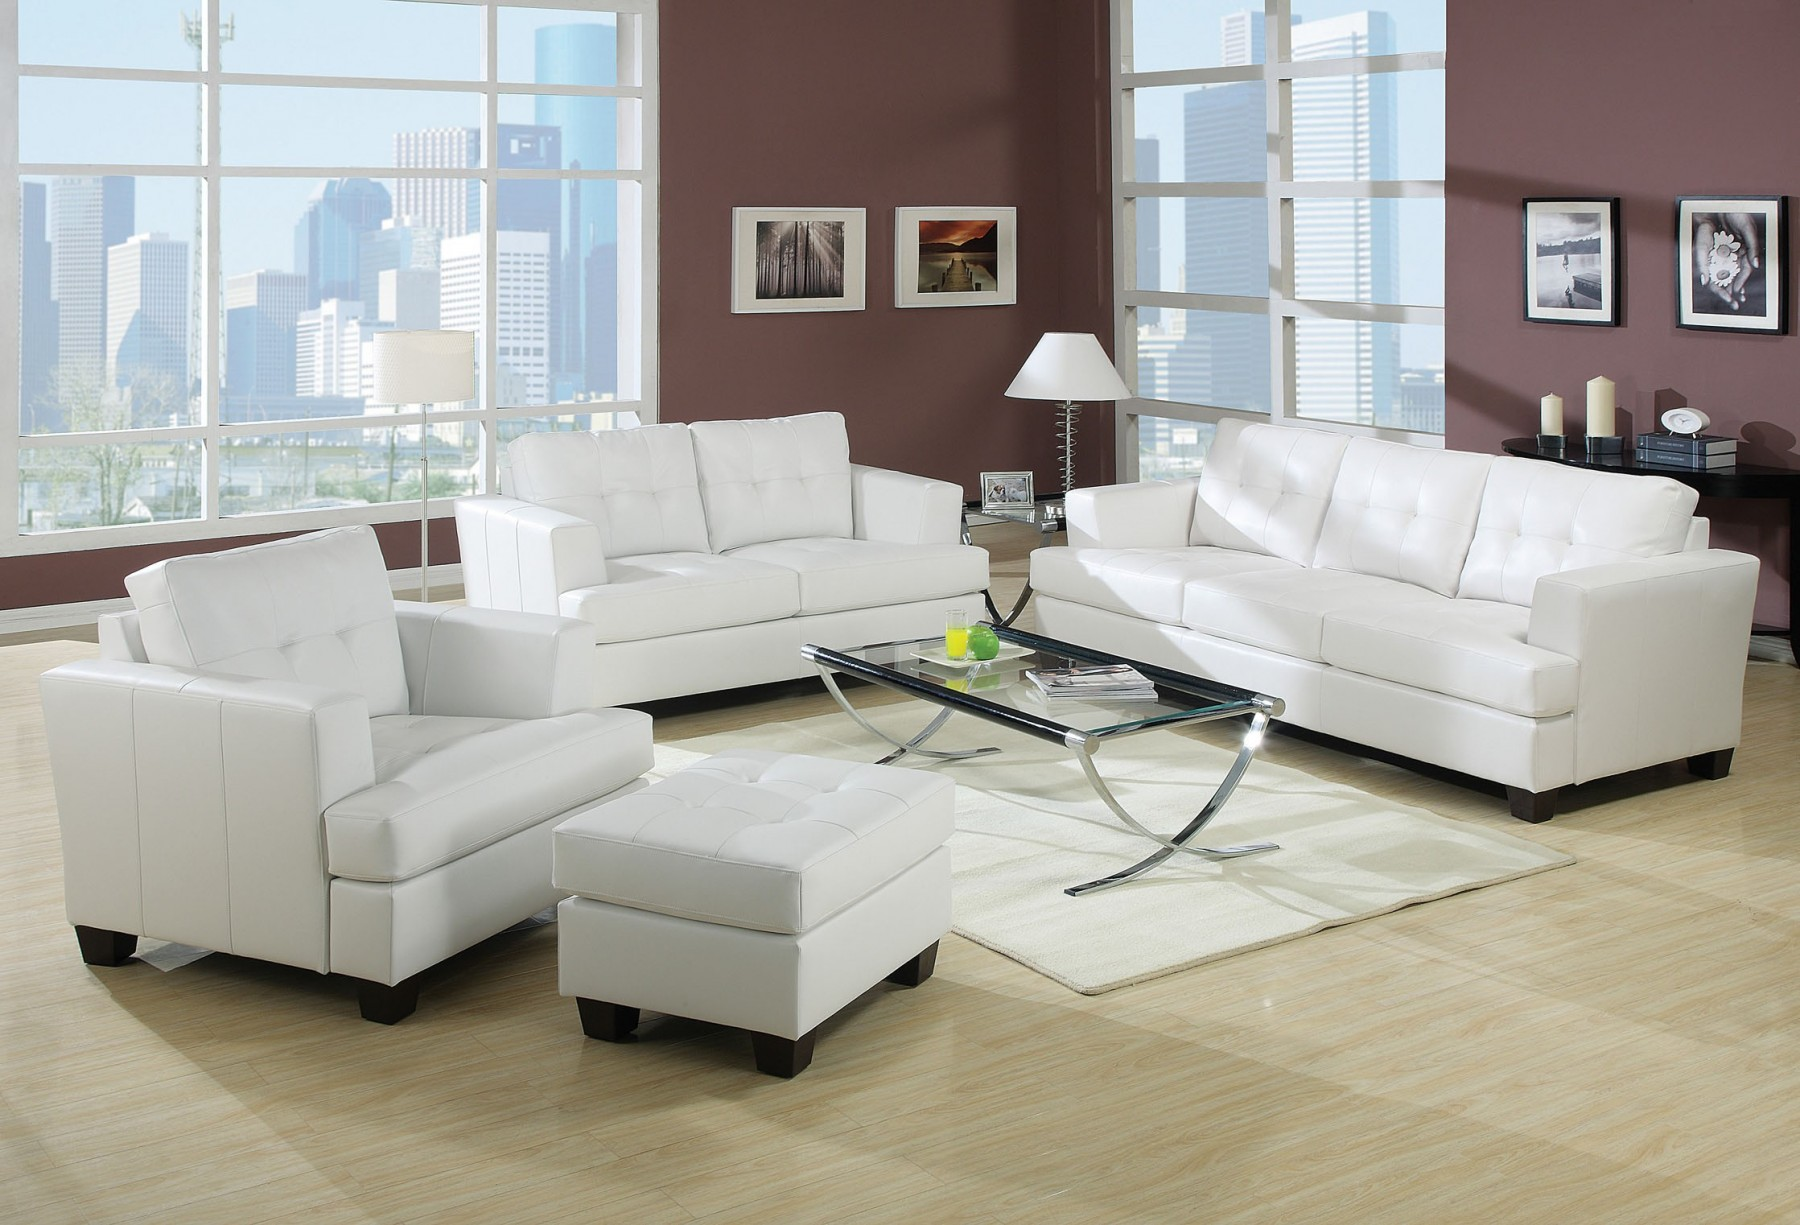 Acme Platinum 2pc Living Room Furniture White Bonded Leather Sofa & Loveseat